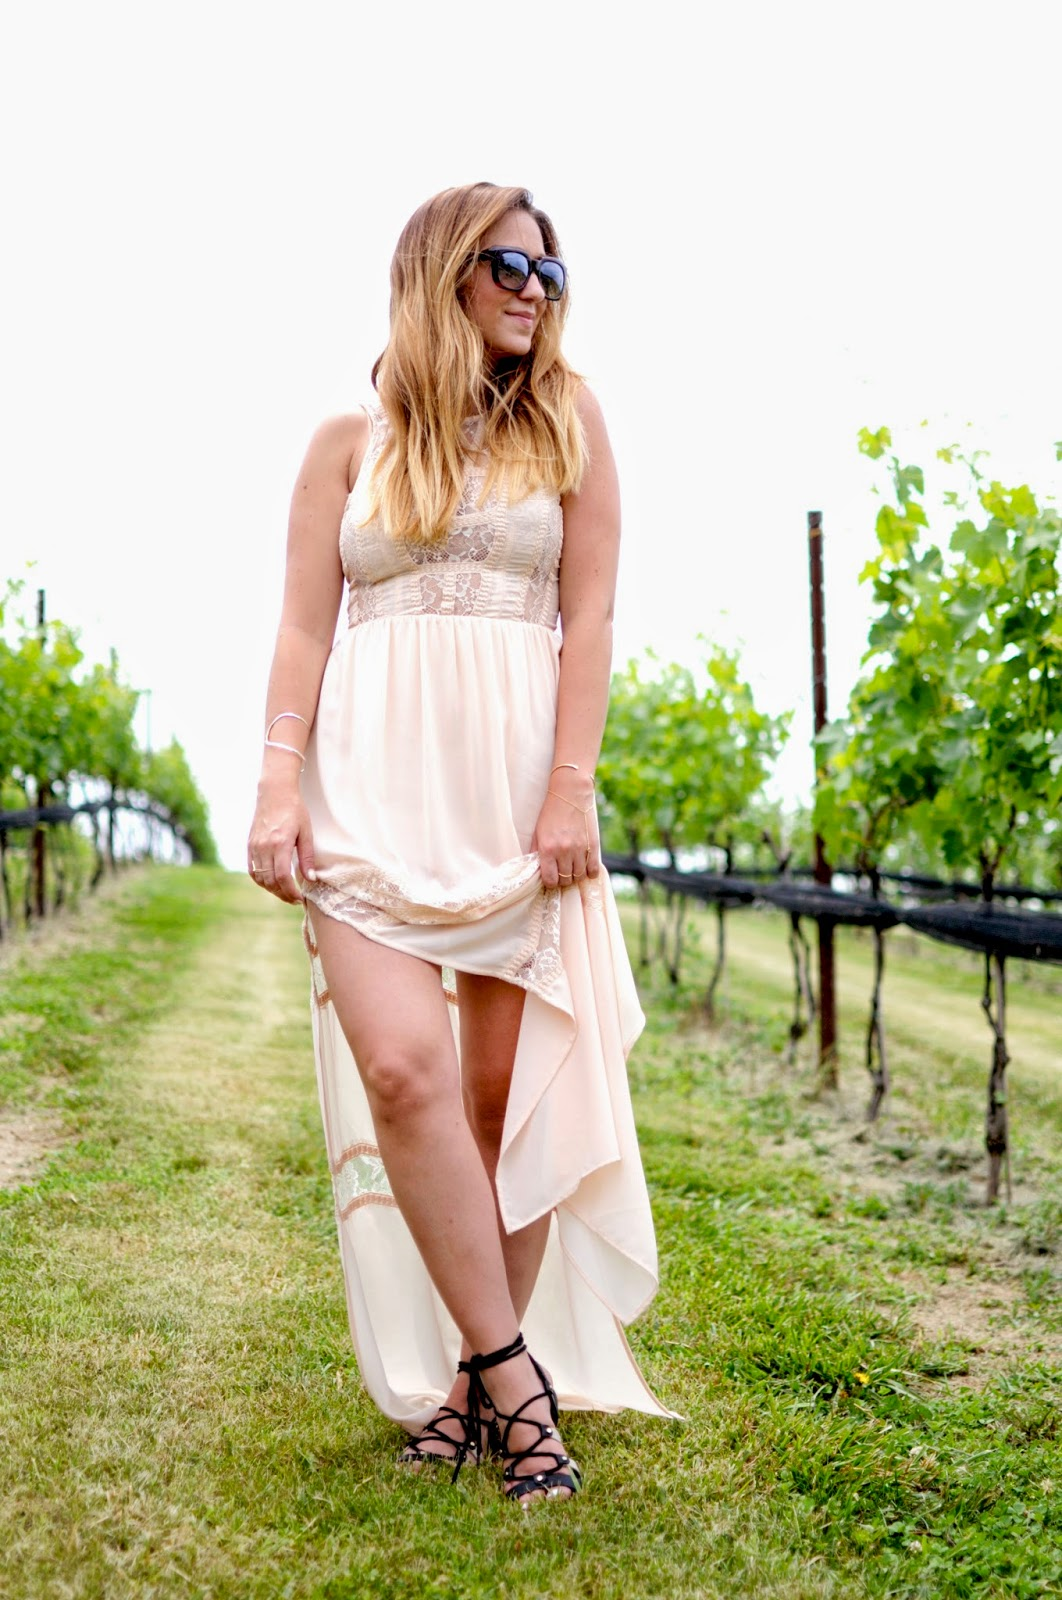 cute winery outfit, virginia wineries, leesburg winery, stone tower, hillsborough, va winery, what to wear to a winery